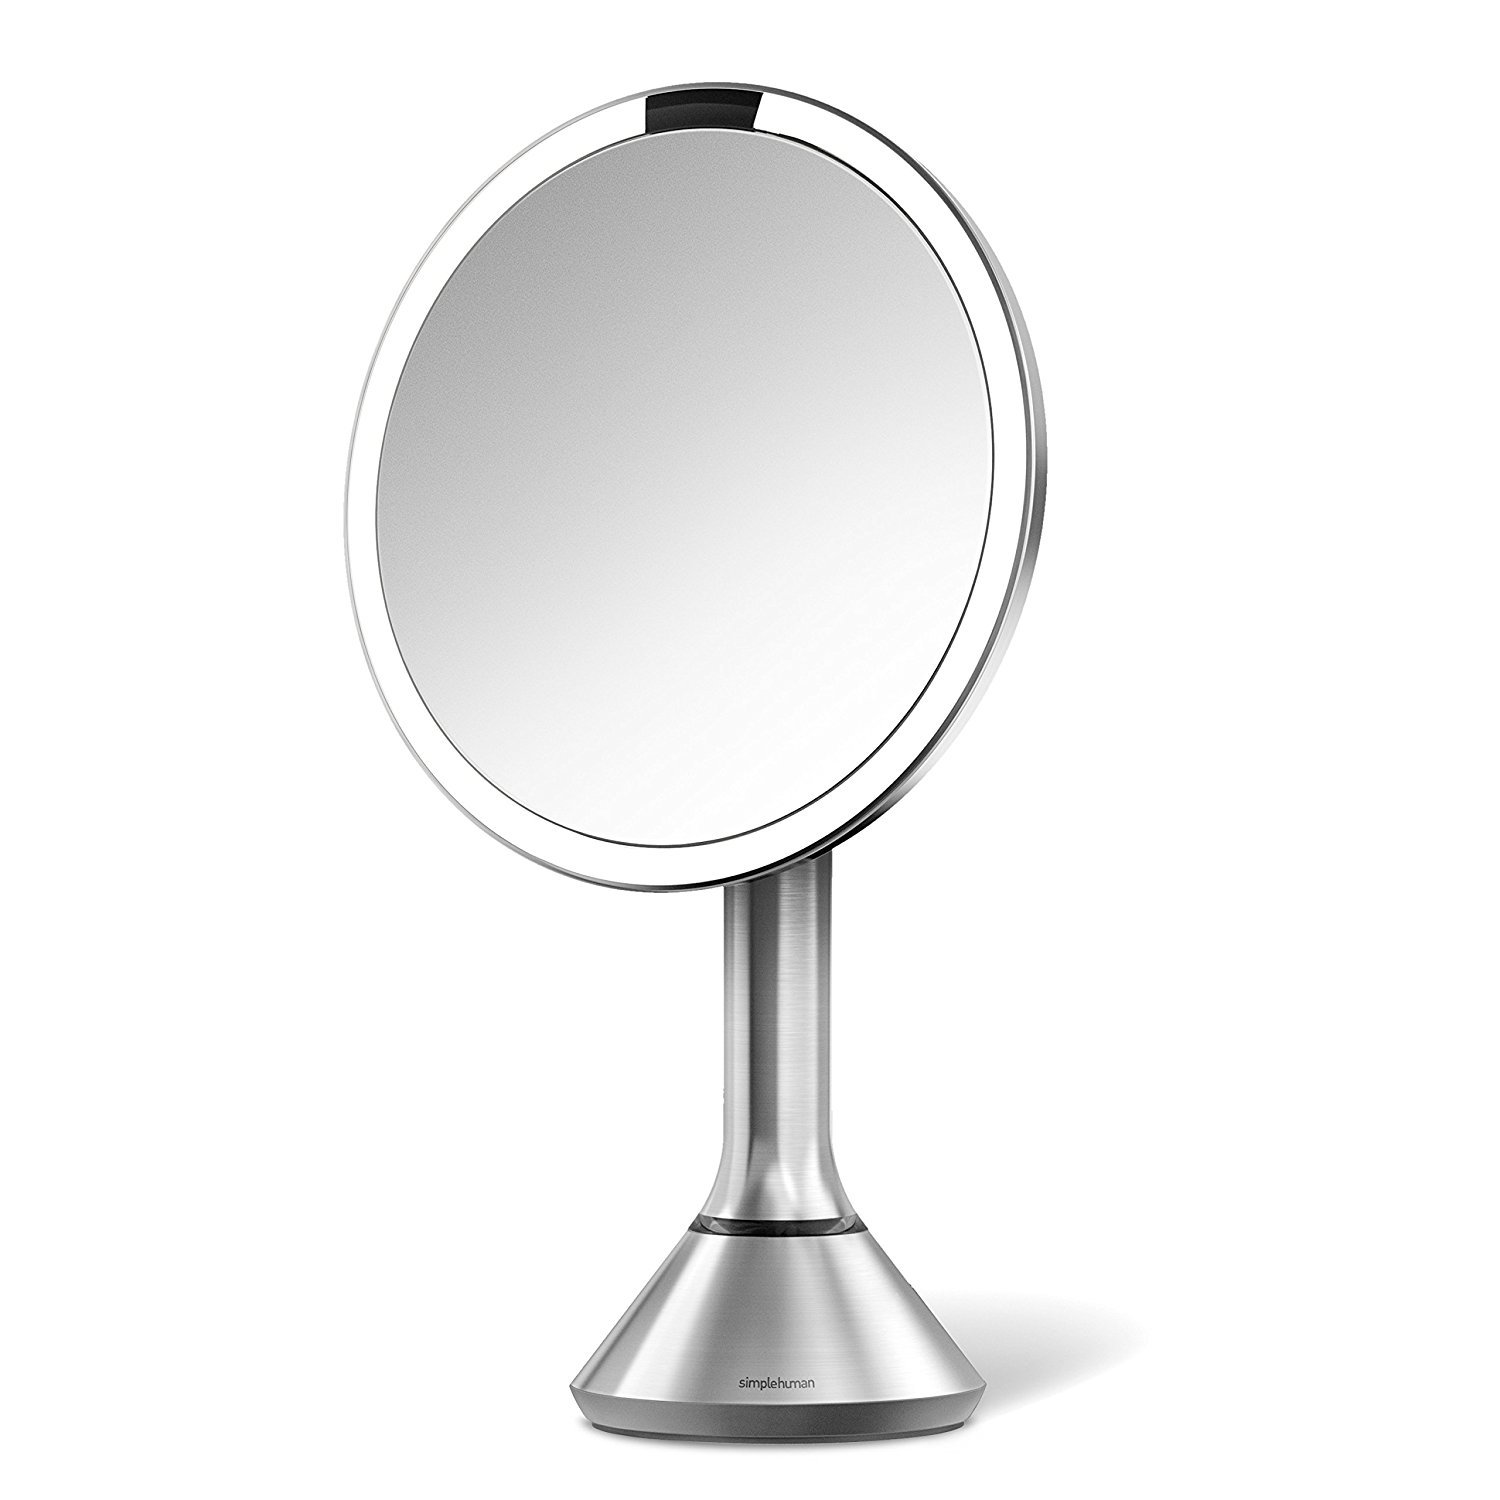 Simplehuman 8 inch Sensor Mirror, Lighted Makeup Vanity Mirror